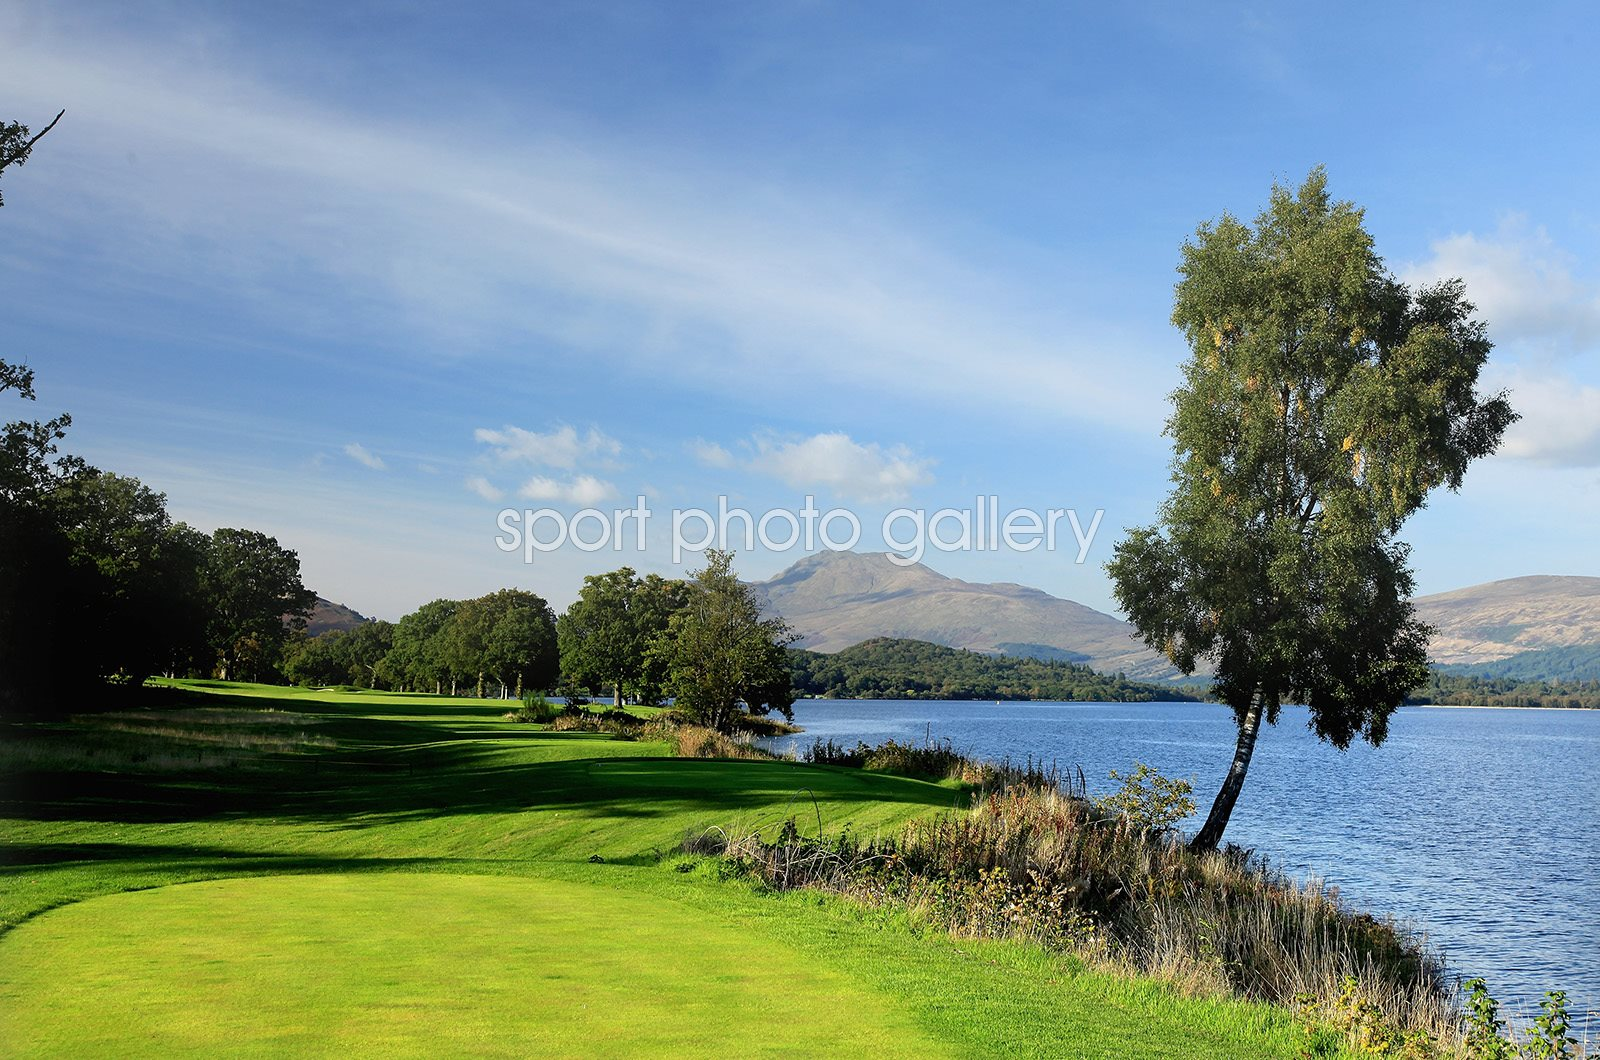 Loch Lomond Golf Club